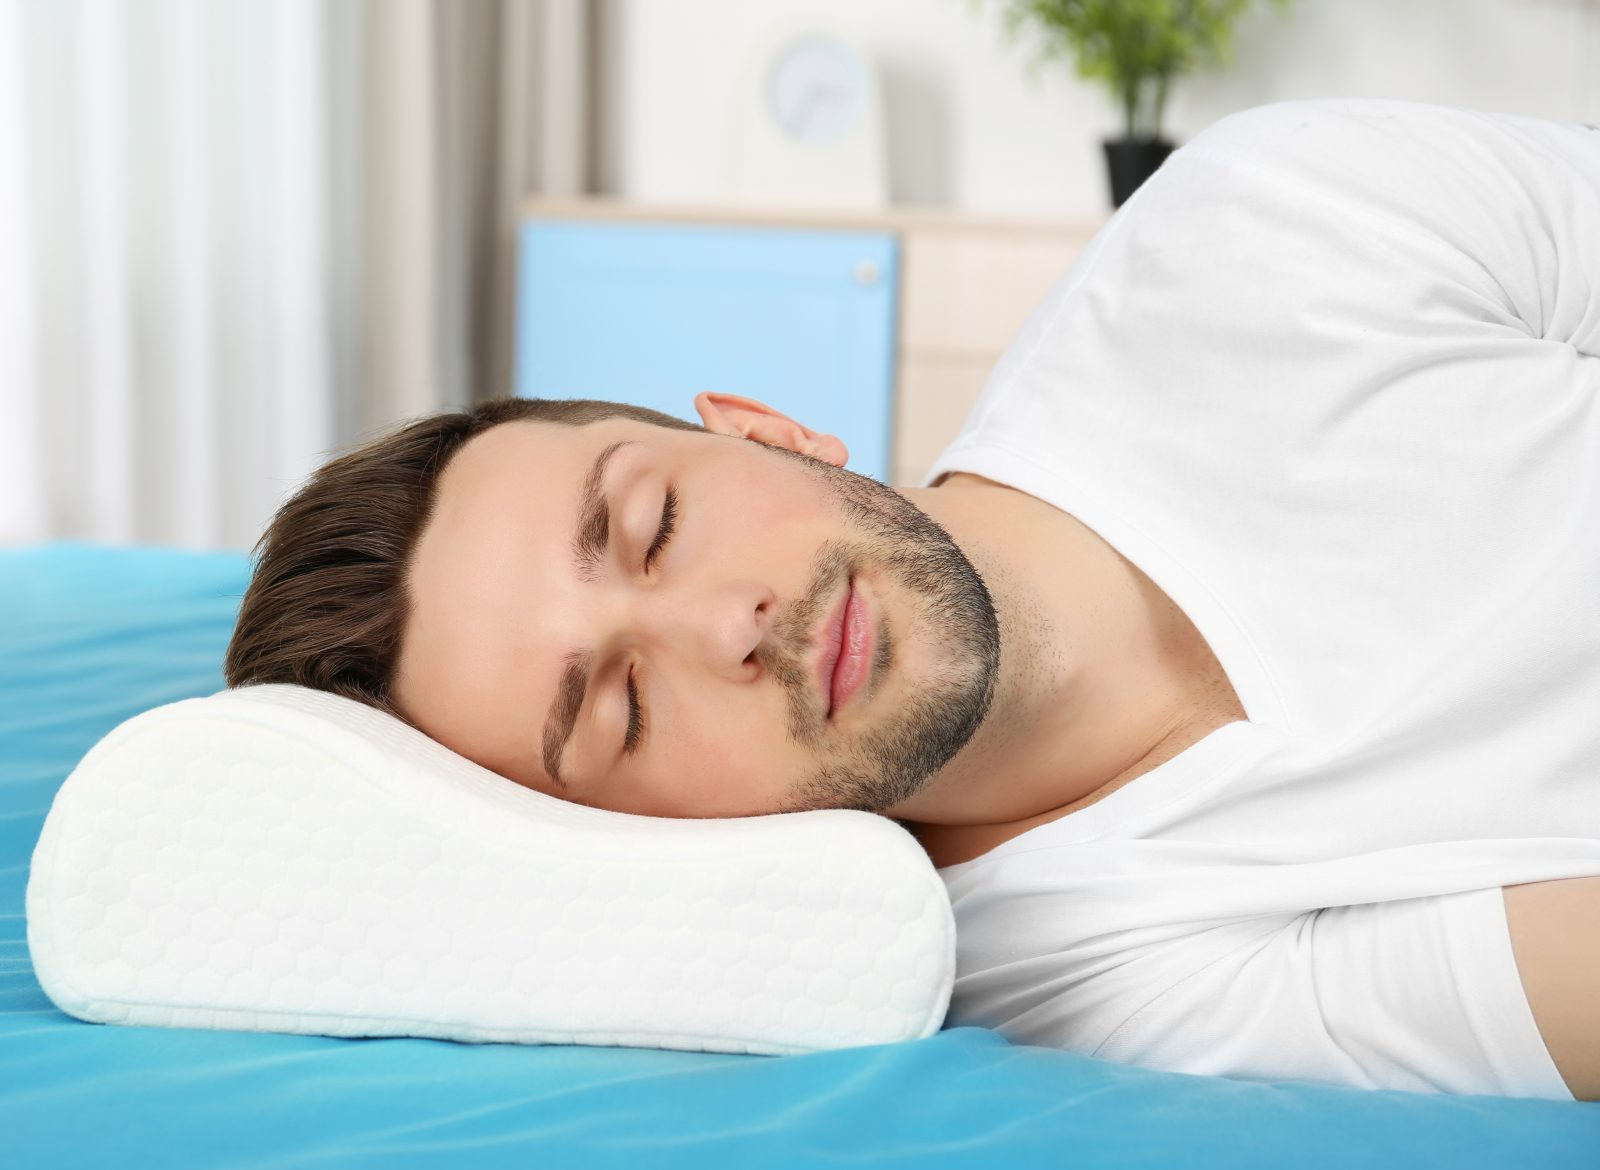 Young man sleeping on bed with orthopedic pillow at home. Healthy posture concept